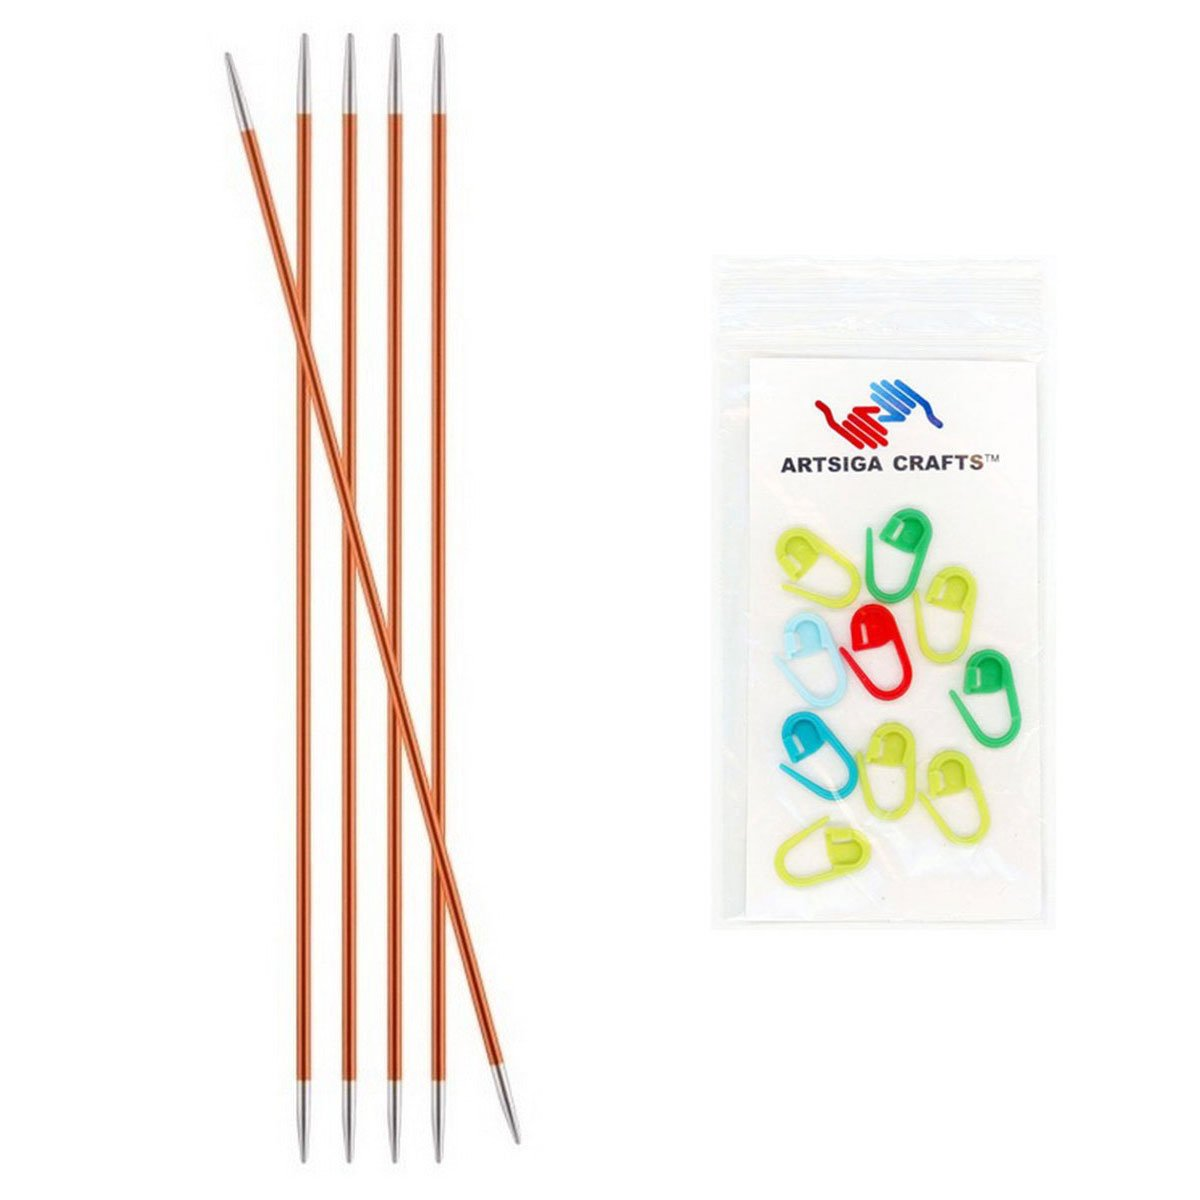 Bundle with 10 Artsiga Crafts Stitch Markers 140002 Knitters Pride Zing Double Pointed Knitting Needles 6in 2.25mm Size US 1